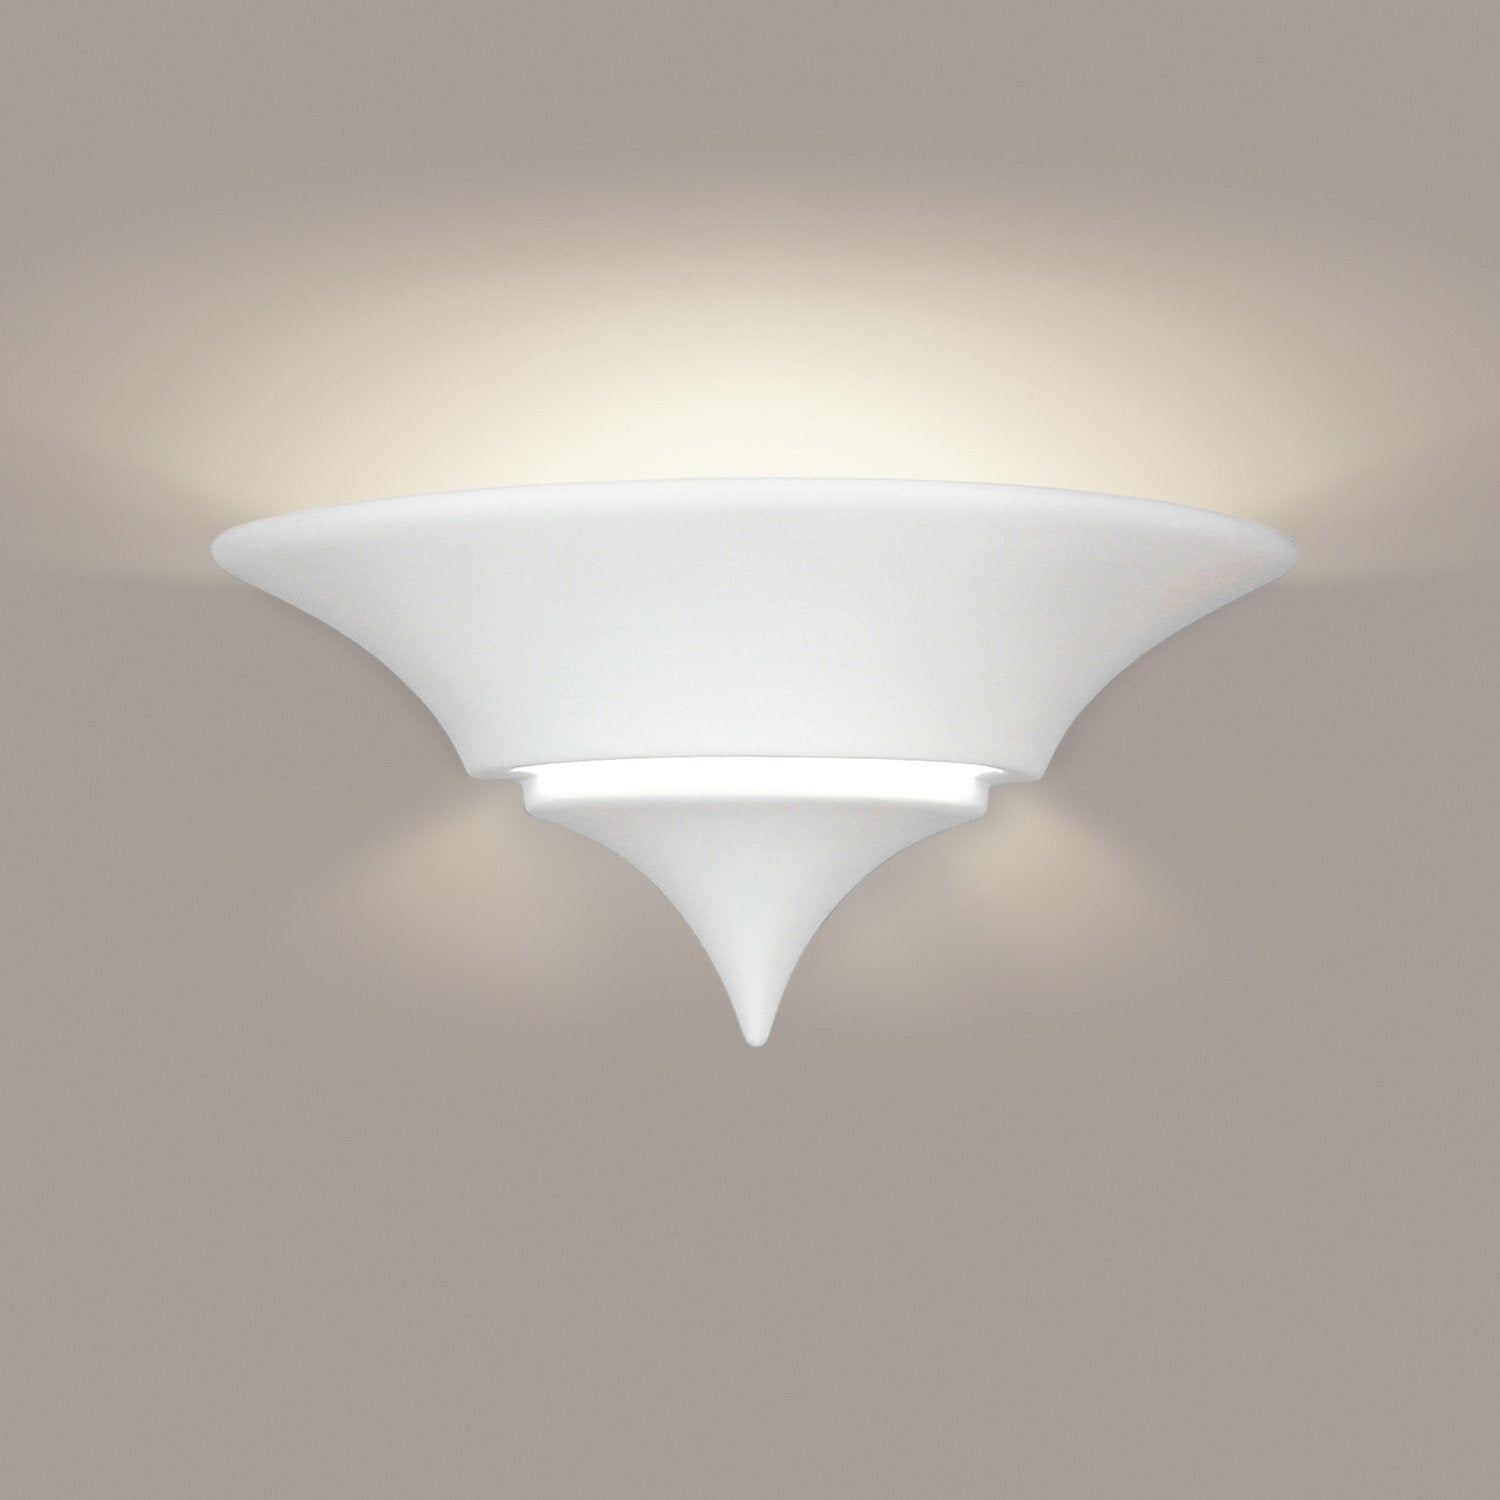 A19 401-CFL13-MB Islands of Light Collection Atlantis Matte Black Finish Wall Sconce